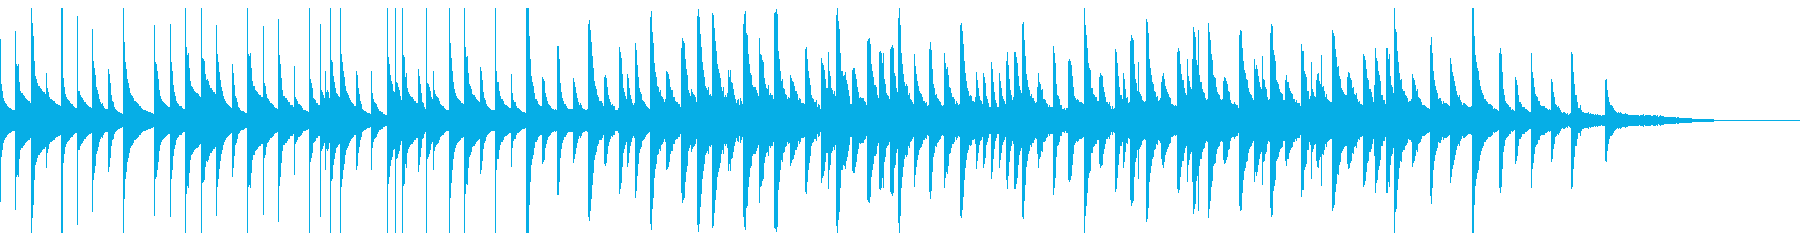 Bad Music Box Reminiscence Game Over's reproduced waveform